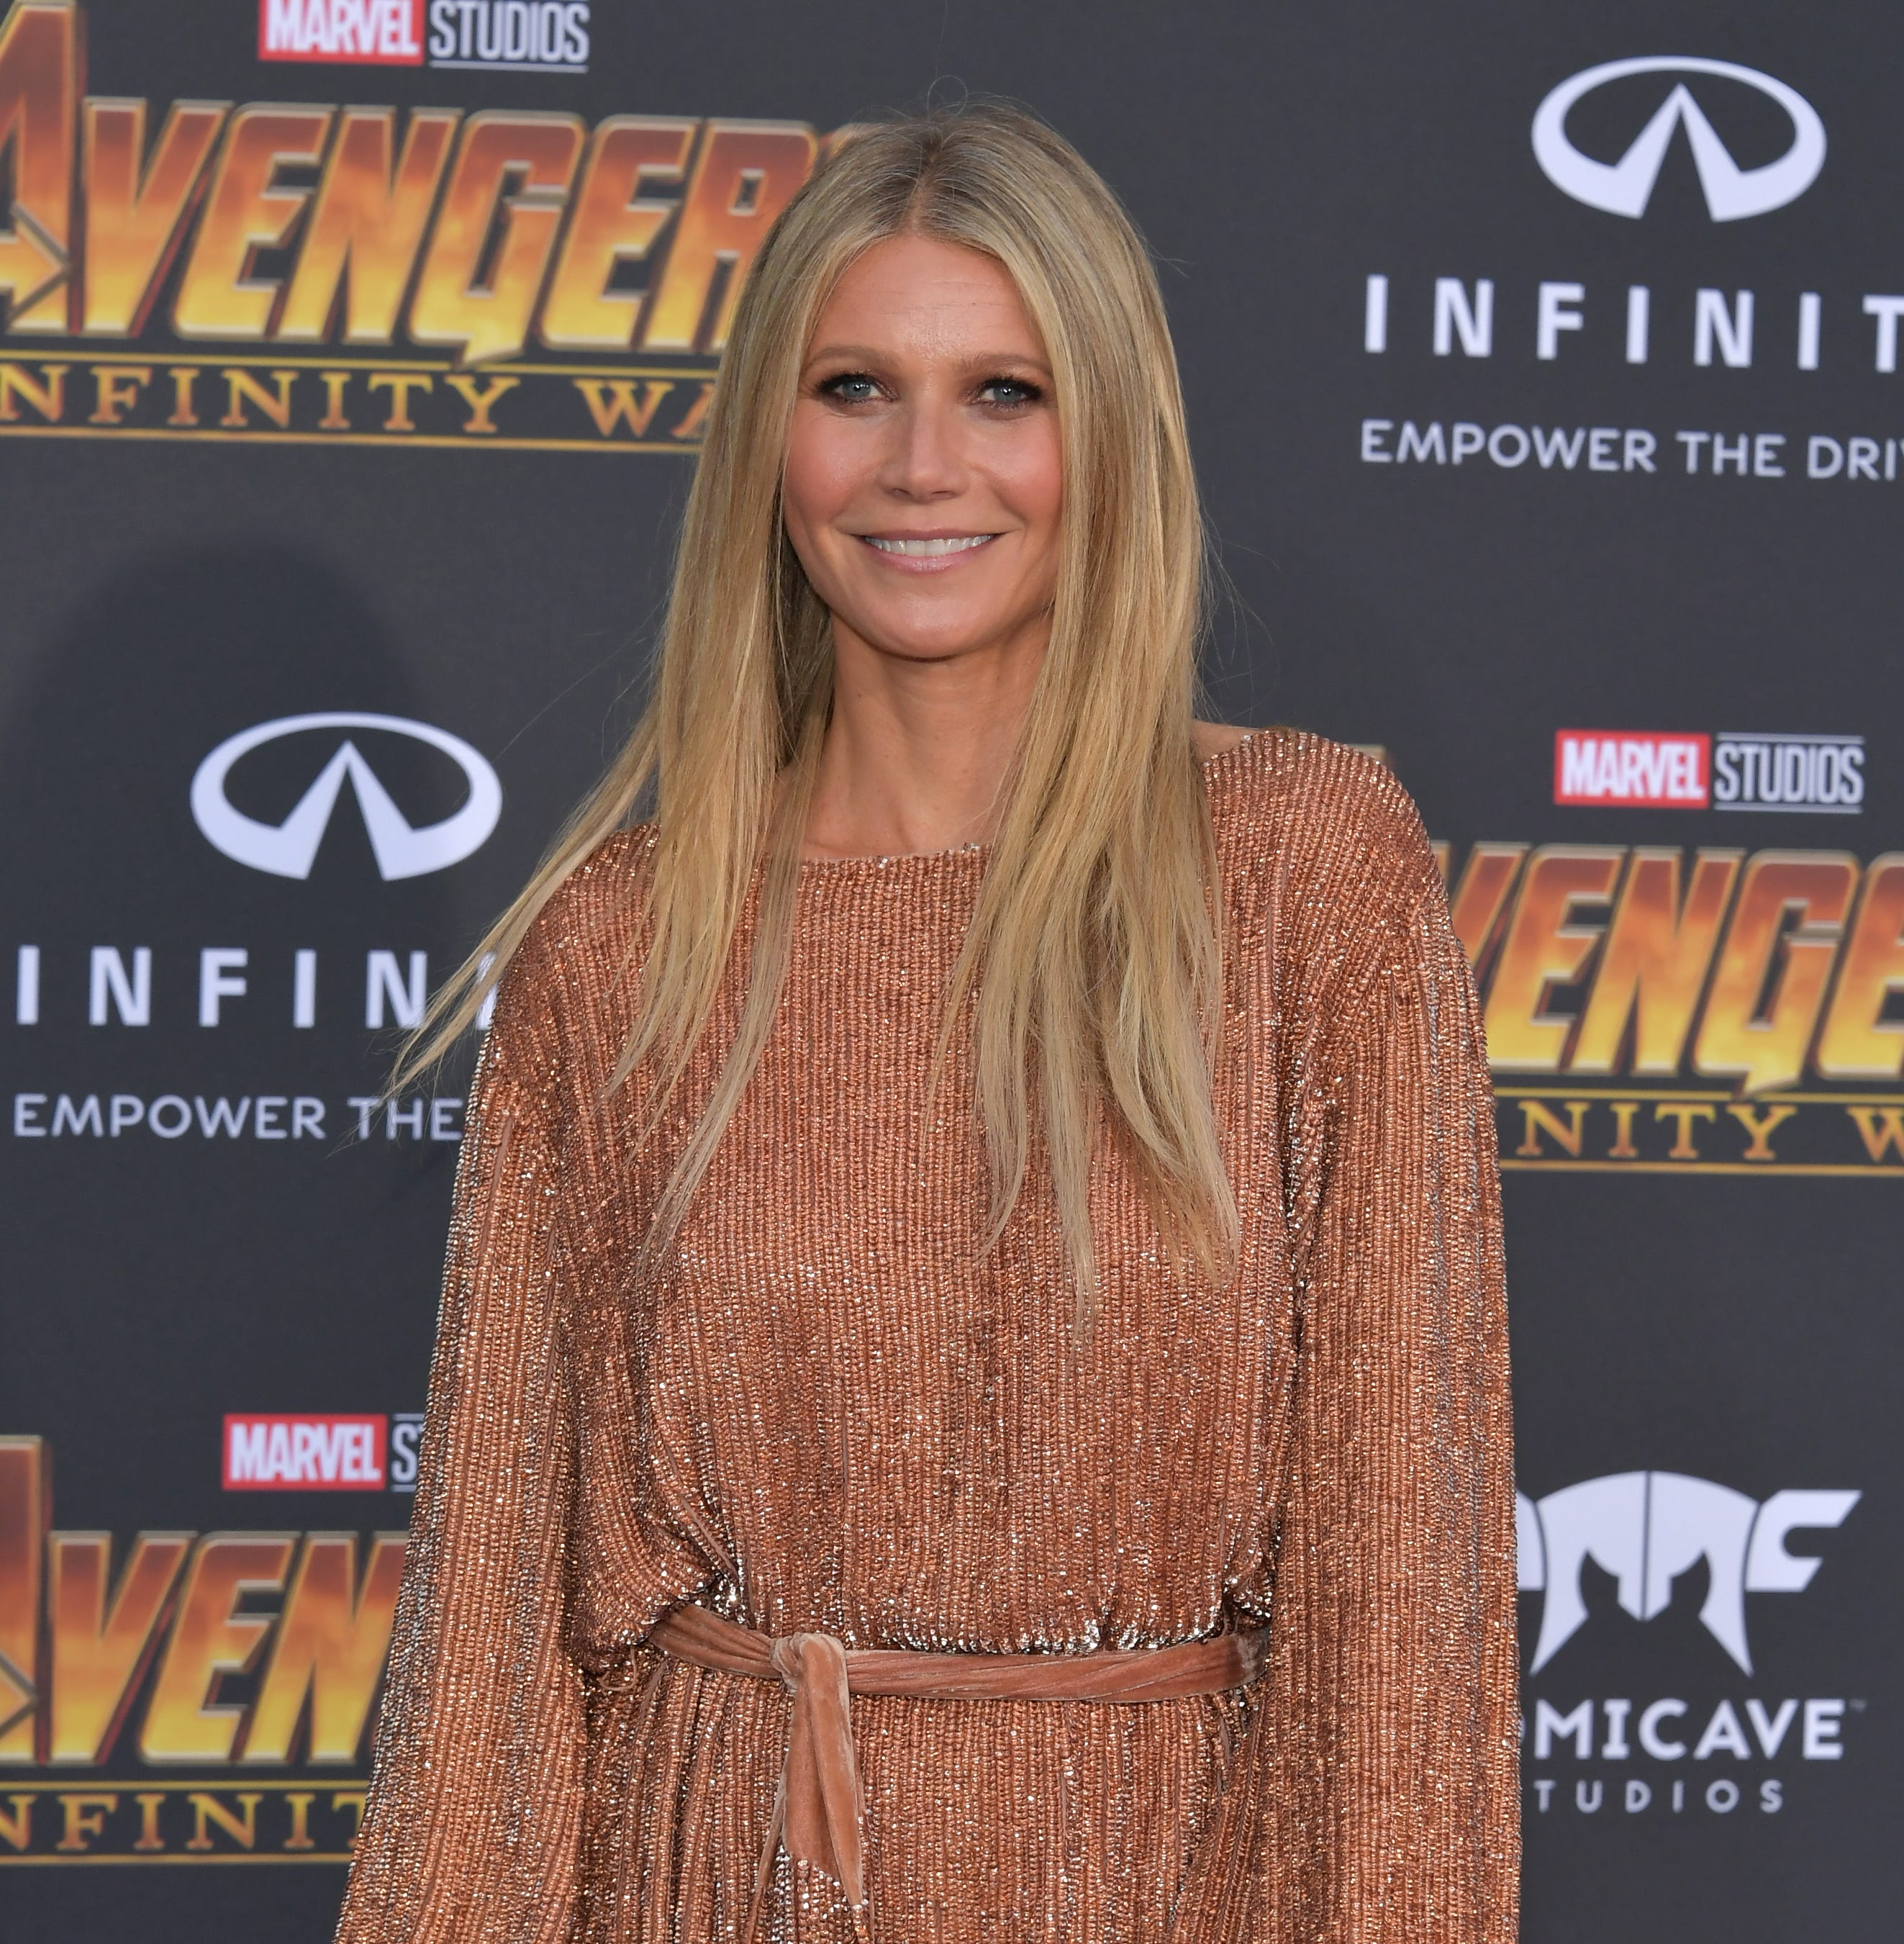 FILE - SEPTEMBER 29: Actor/businesswoman Gwyneth Paltrow is marrying Brad Falchuk today at a private ceremony in the Hamptons. LOS ANGELES, CA - APRIL 23:  PGwyneth Paltrow arrives at the Premiere Of Disney And Marvel's 'Avengers: Infinity War' on April 23, 2018 in Los Angeles, California.  (Photo by Neilson Barnard/Getty Images) ORG XMIT: 775096272 ORIG FILE ID: 950513708